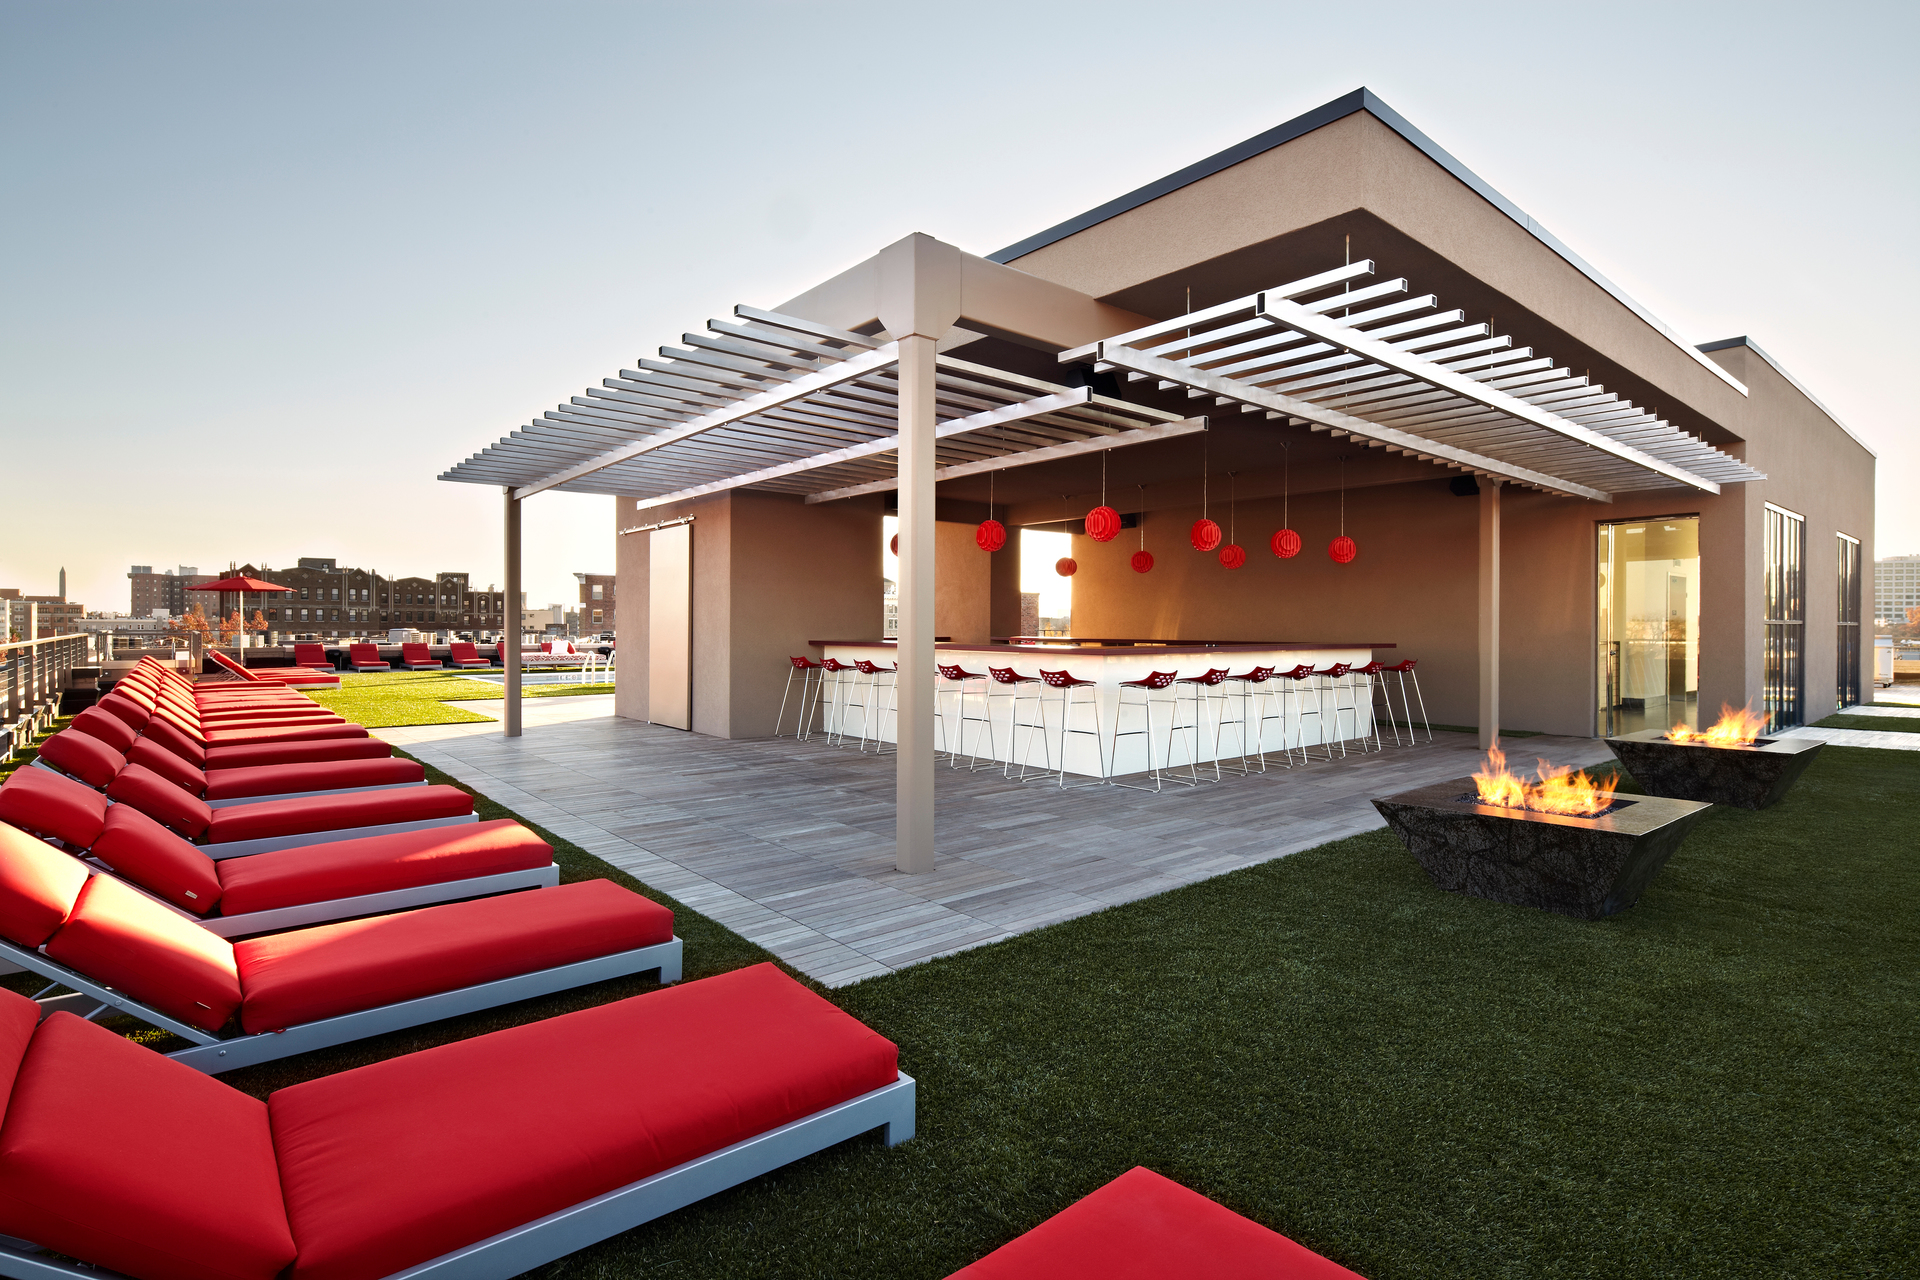 Vida Fitness in Washington, D.C., introduced the Penthouse Pool Club in 2011. The club penthouse features private cabanas, lounge and conversation areas, fire pit, and poolside cocktail and foodservice bar.